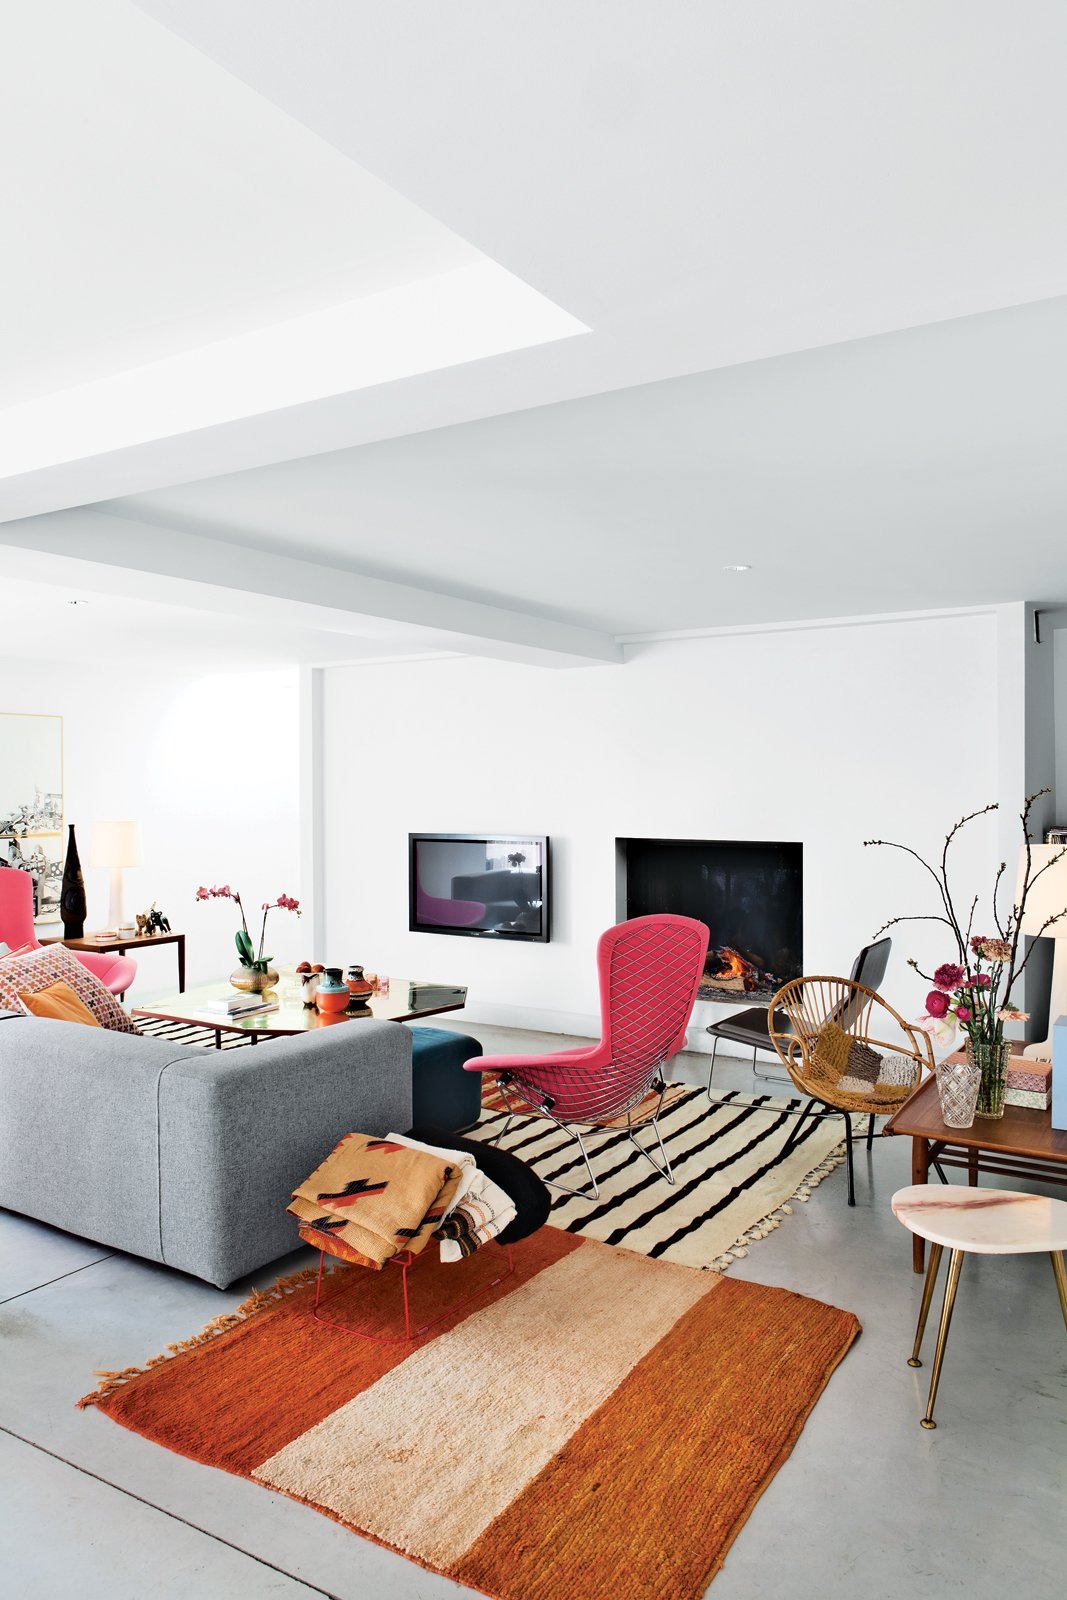 A pair of interior architects with a years-in-the-making furniture collection recast an old Belgian factory—in Bellem, a 25-minute drive out of Ghent and halfway to Bruges—as a playful family home. The stars of the living room are a pair of pink Bird chairs by Harry Bertoia for Knoll, accented by a brass-and-steel coffee table designed by homeowners as well as vintage marble-topped and wood occasional tables and antique rugs are from Morocco. Photo by Frederik Vercruysse.  100+ Best Modern Seating Designs by Dwell from Design Classic: Bertoia Seating Collection